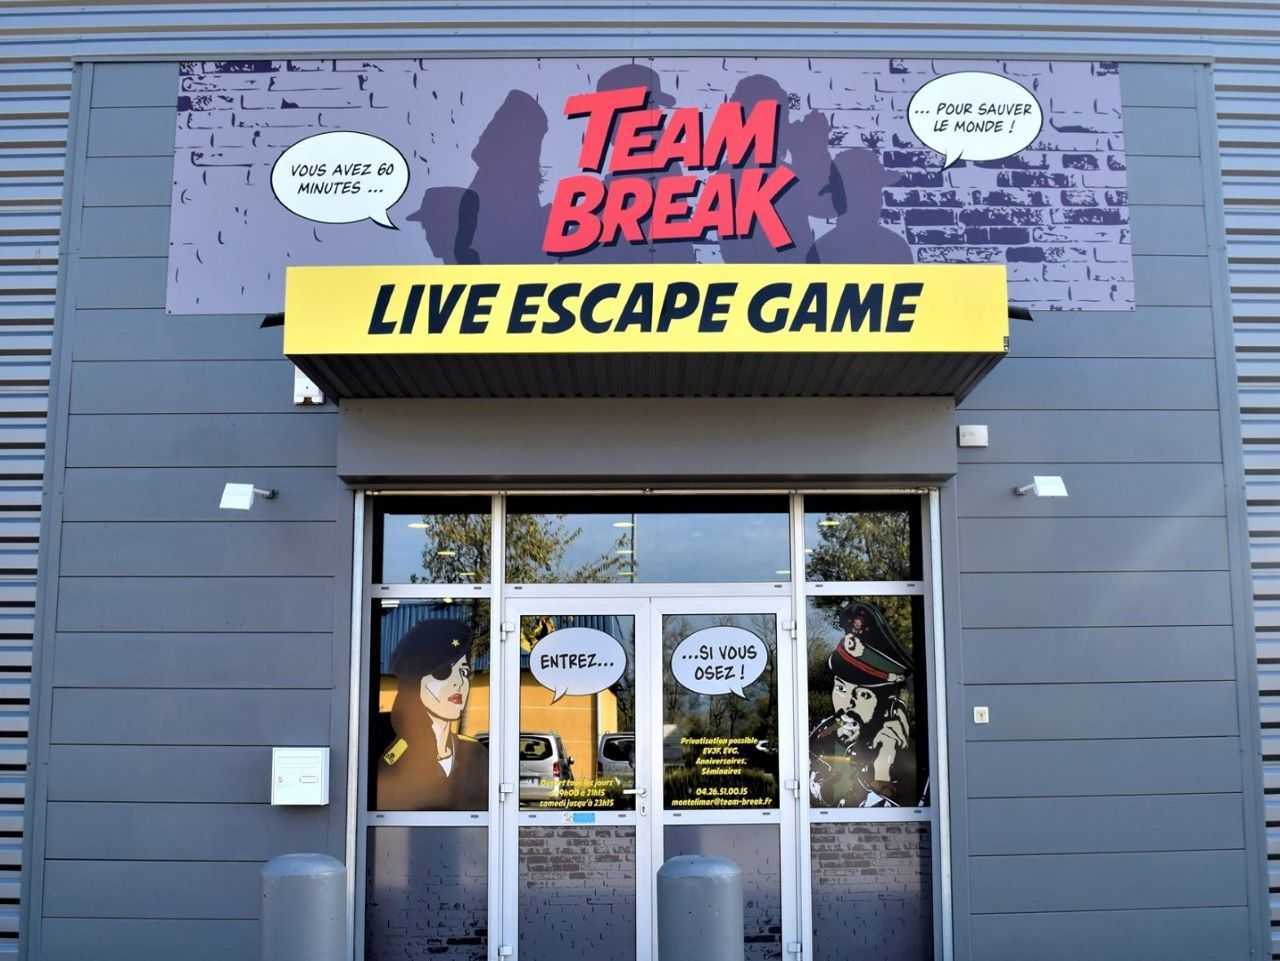 Team break, escape game à Montélimar